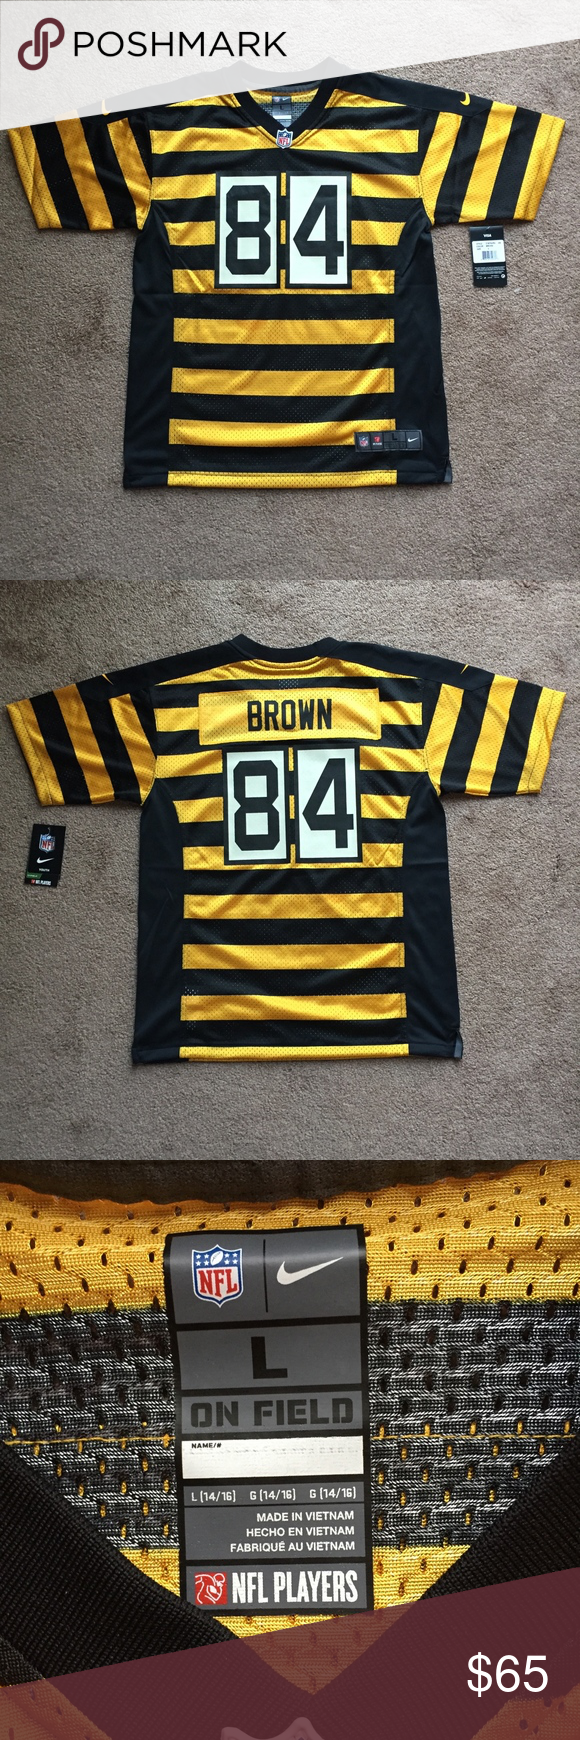 412f7b9f78f Nike NFL Game Jersey Steelers Antonio Brown Large Brand new